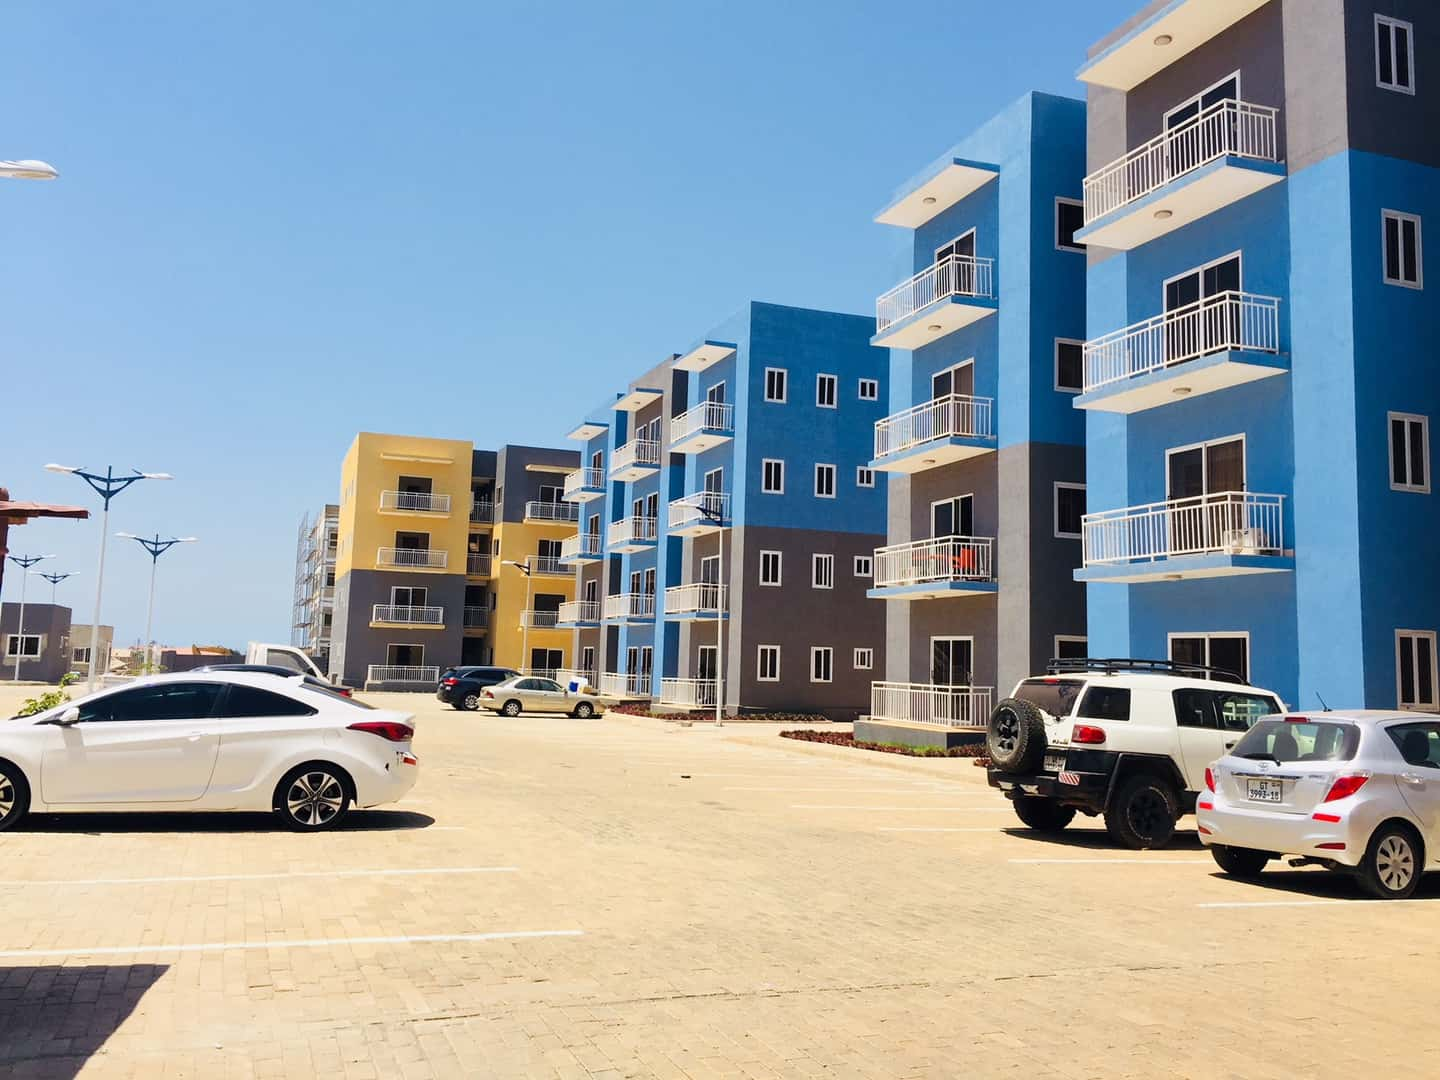 2 bedroom apartment for sale in Ghana